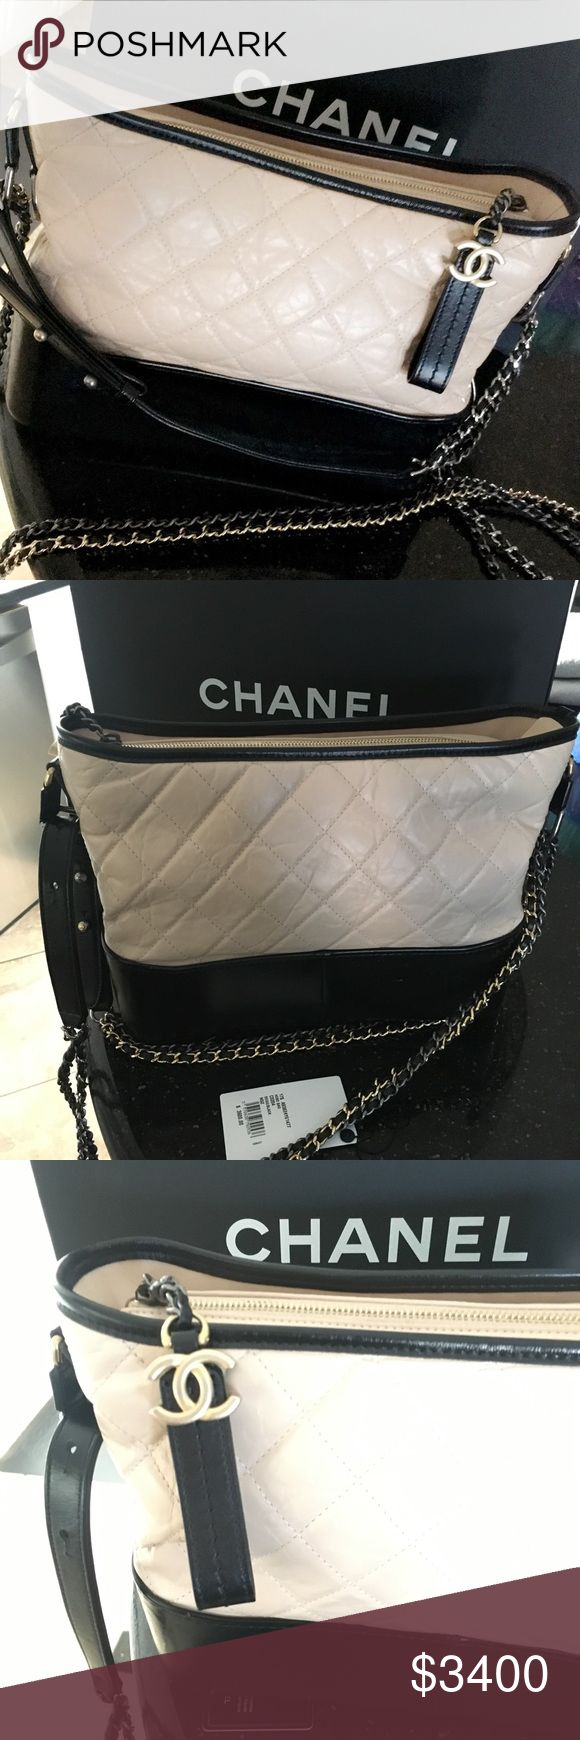 Chanel Gabrielle Hobo bag Gorgeous Chanel bag in the Gabrielle style introduced in 2017.  In the large (9.6 by 12.2 by 3.9) size in a beige/black color. Bag is in great condition and has been used only 2 weeks. The leather is extremely sensitive and has wrinkles due to slight wear which is super normal in this material. Super sturdy base, and with 3 different colored chains. Bag comes with original dust bag, packing, authenticity card and tags. Message for any questions! CHANEL Bags…